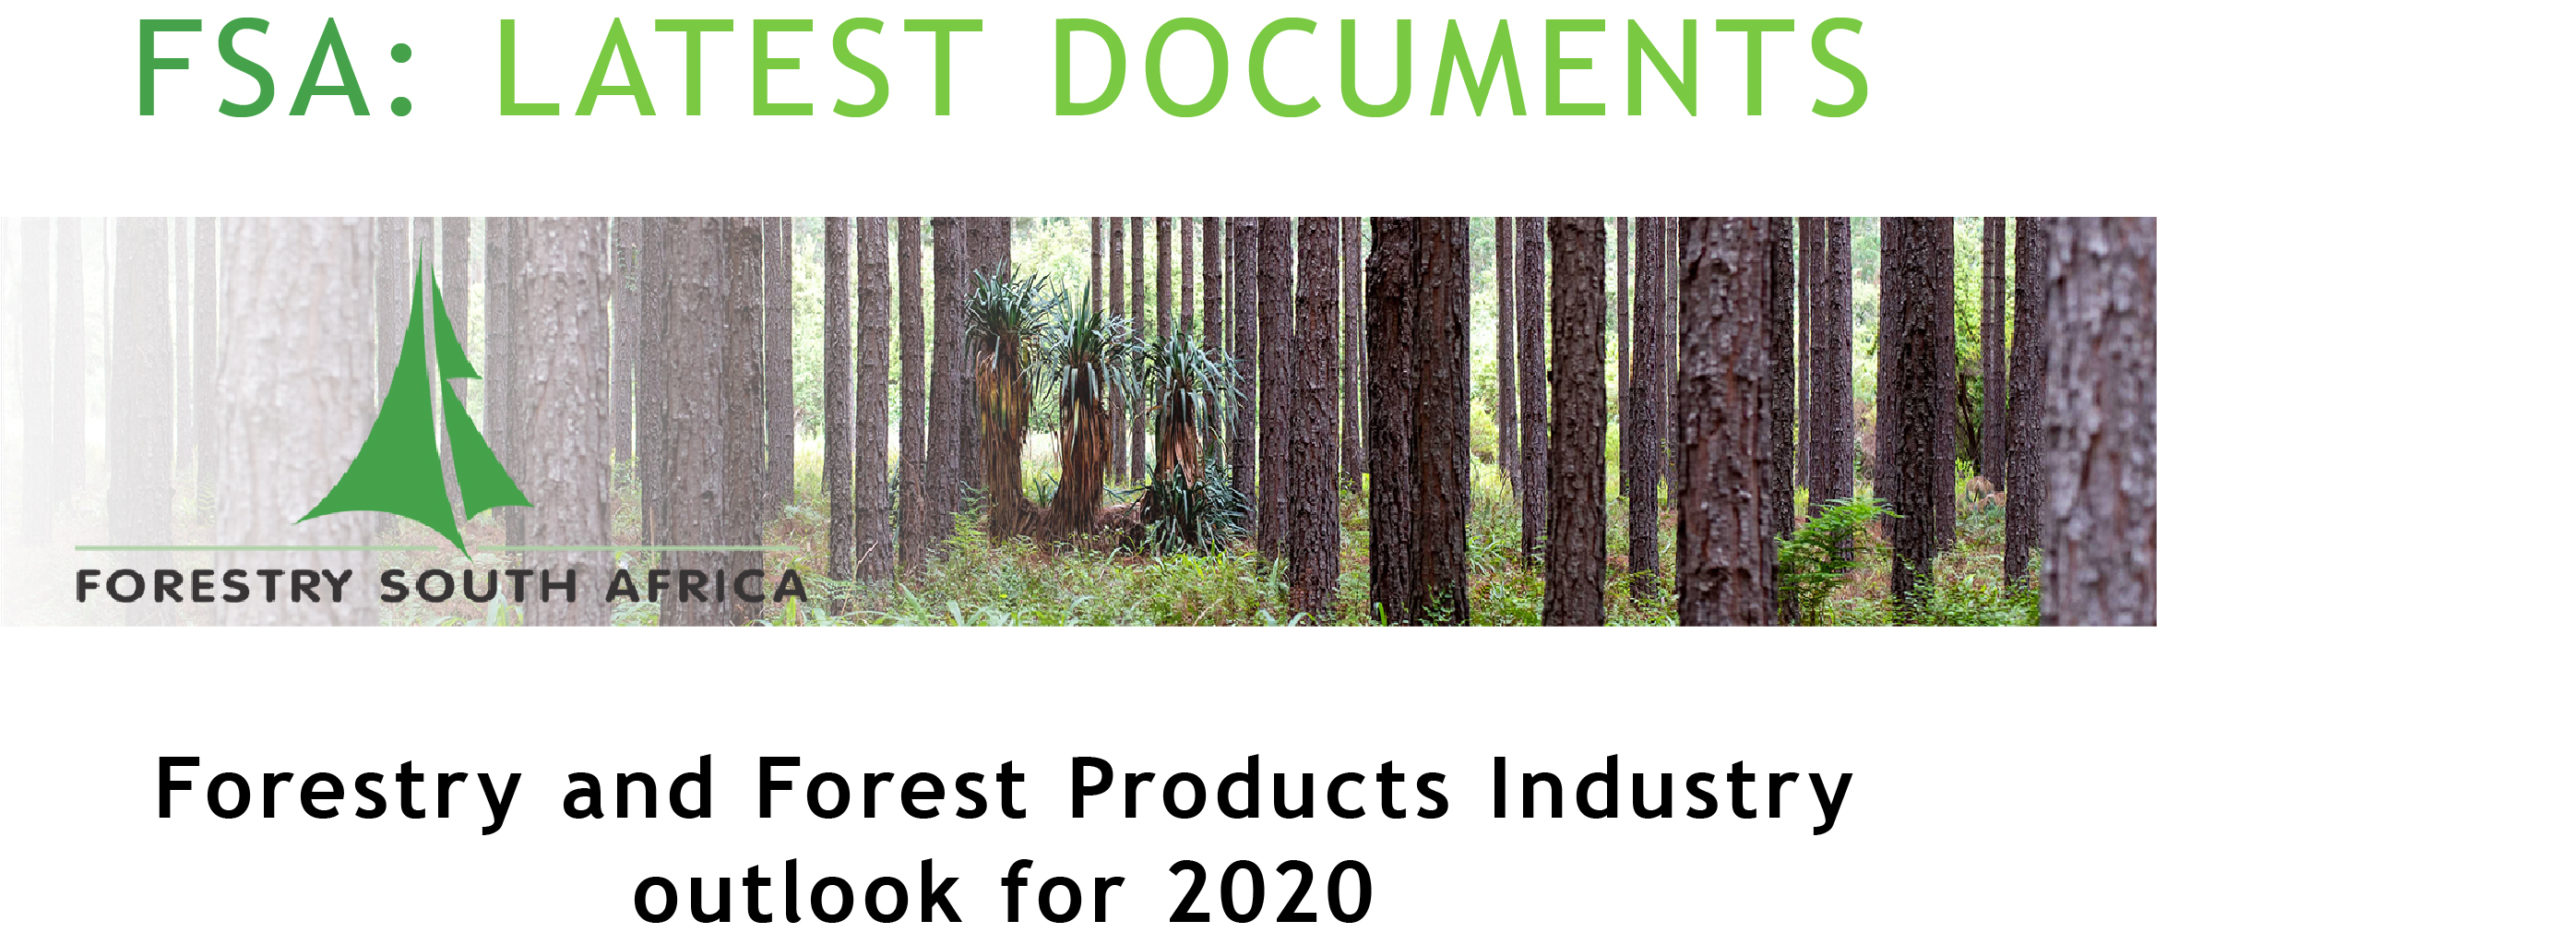 001 latest documents - Forestry 2020